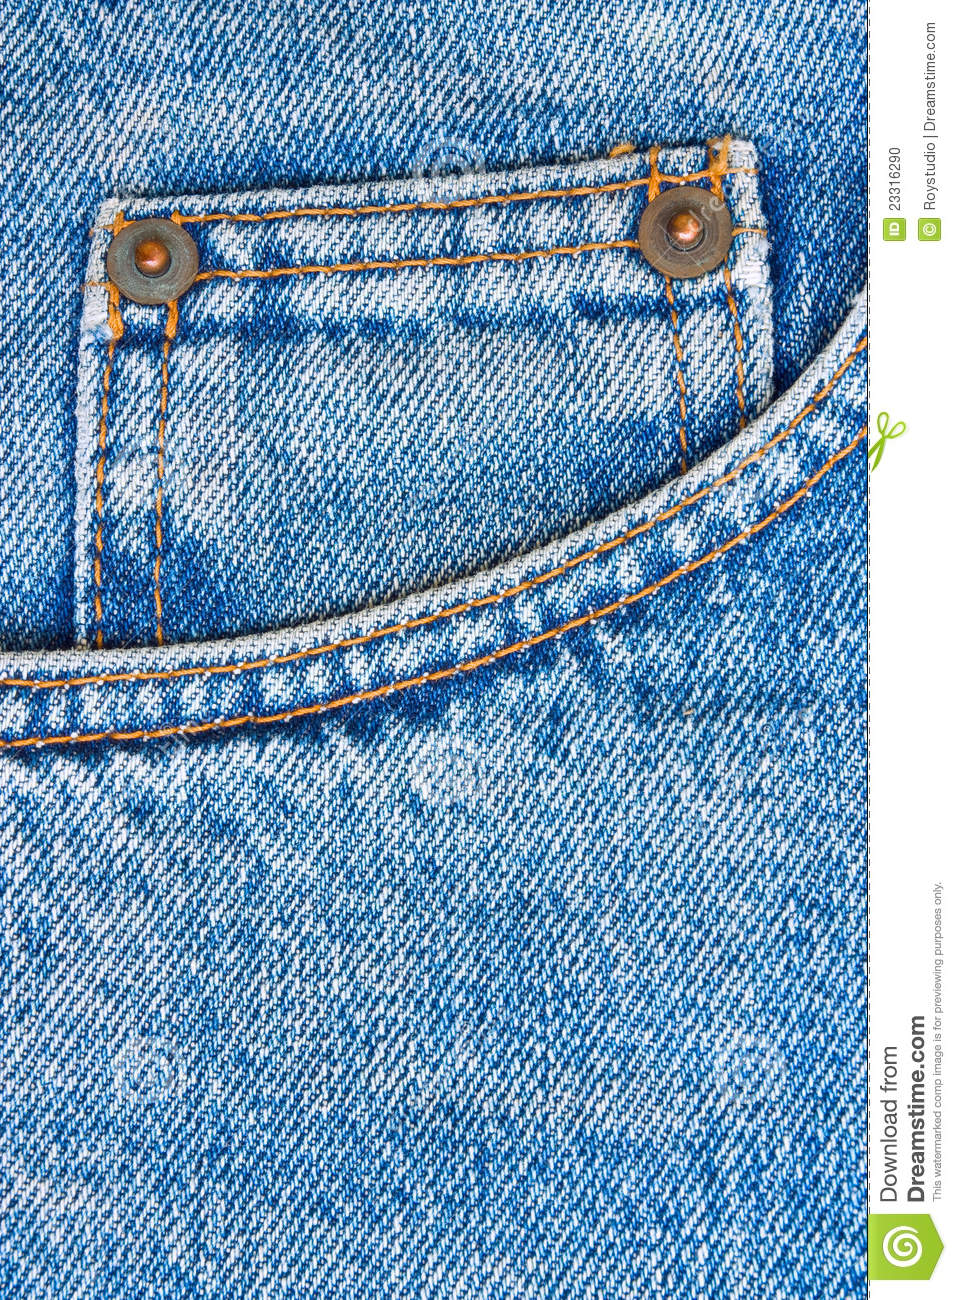 Blue Jeans Trousers Pocket As Background Stock Photo - Image 23316290